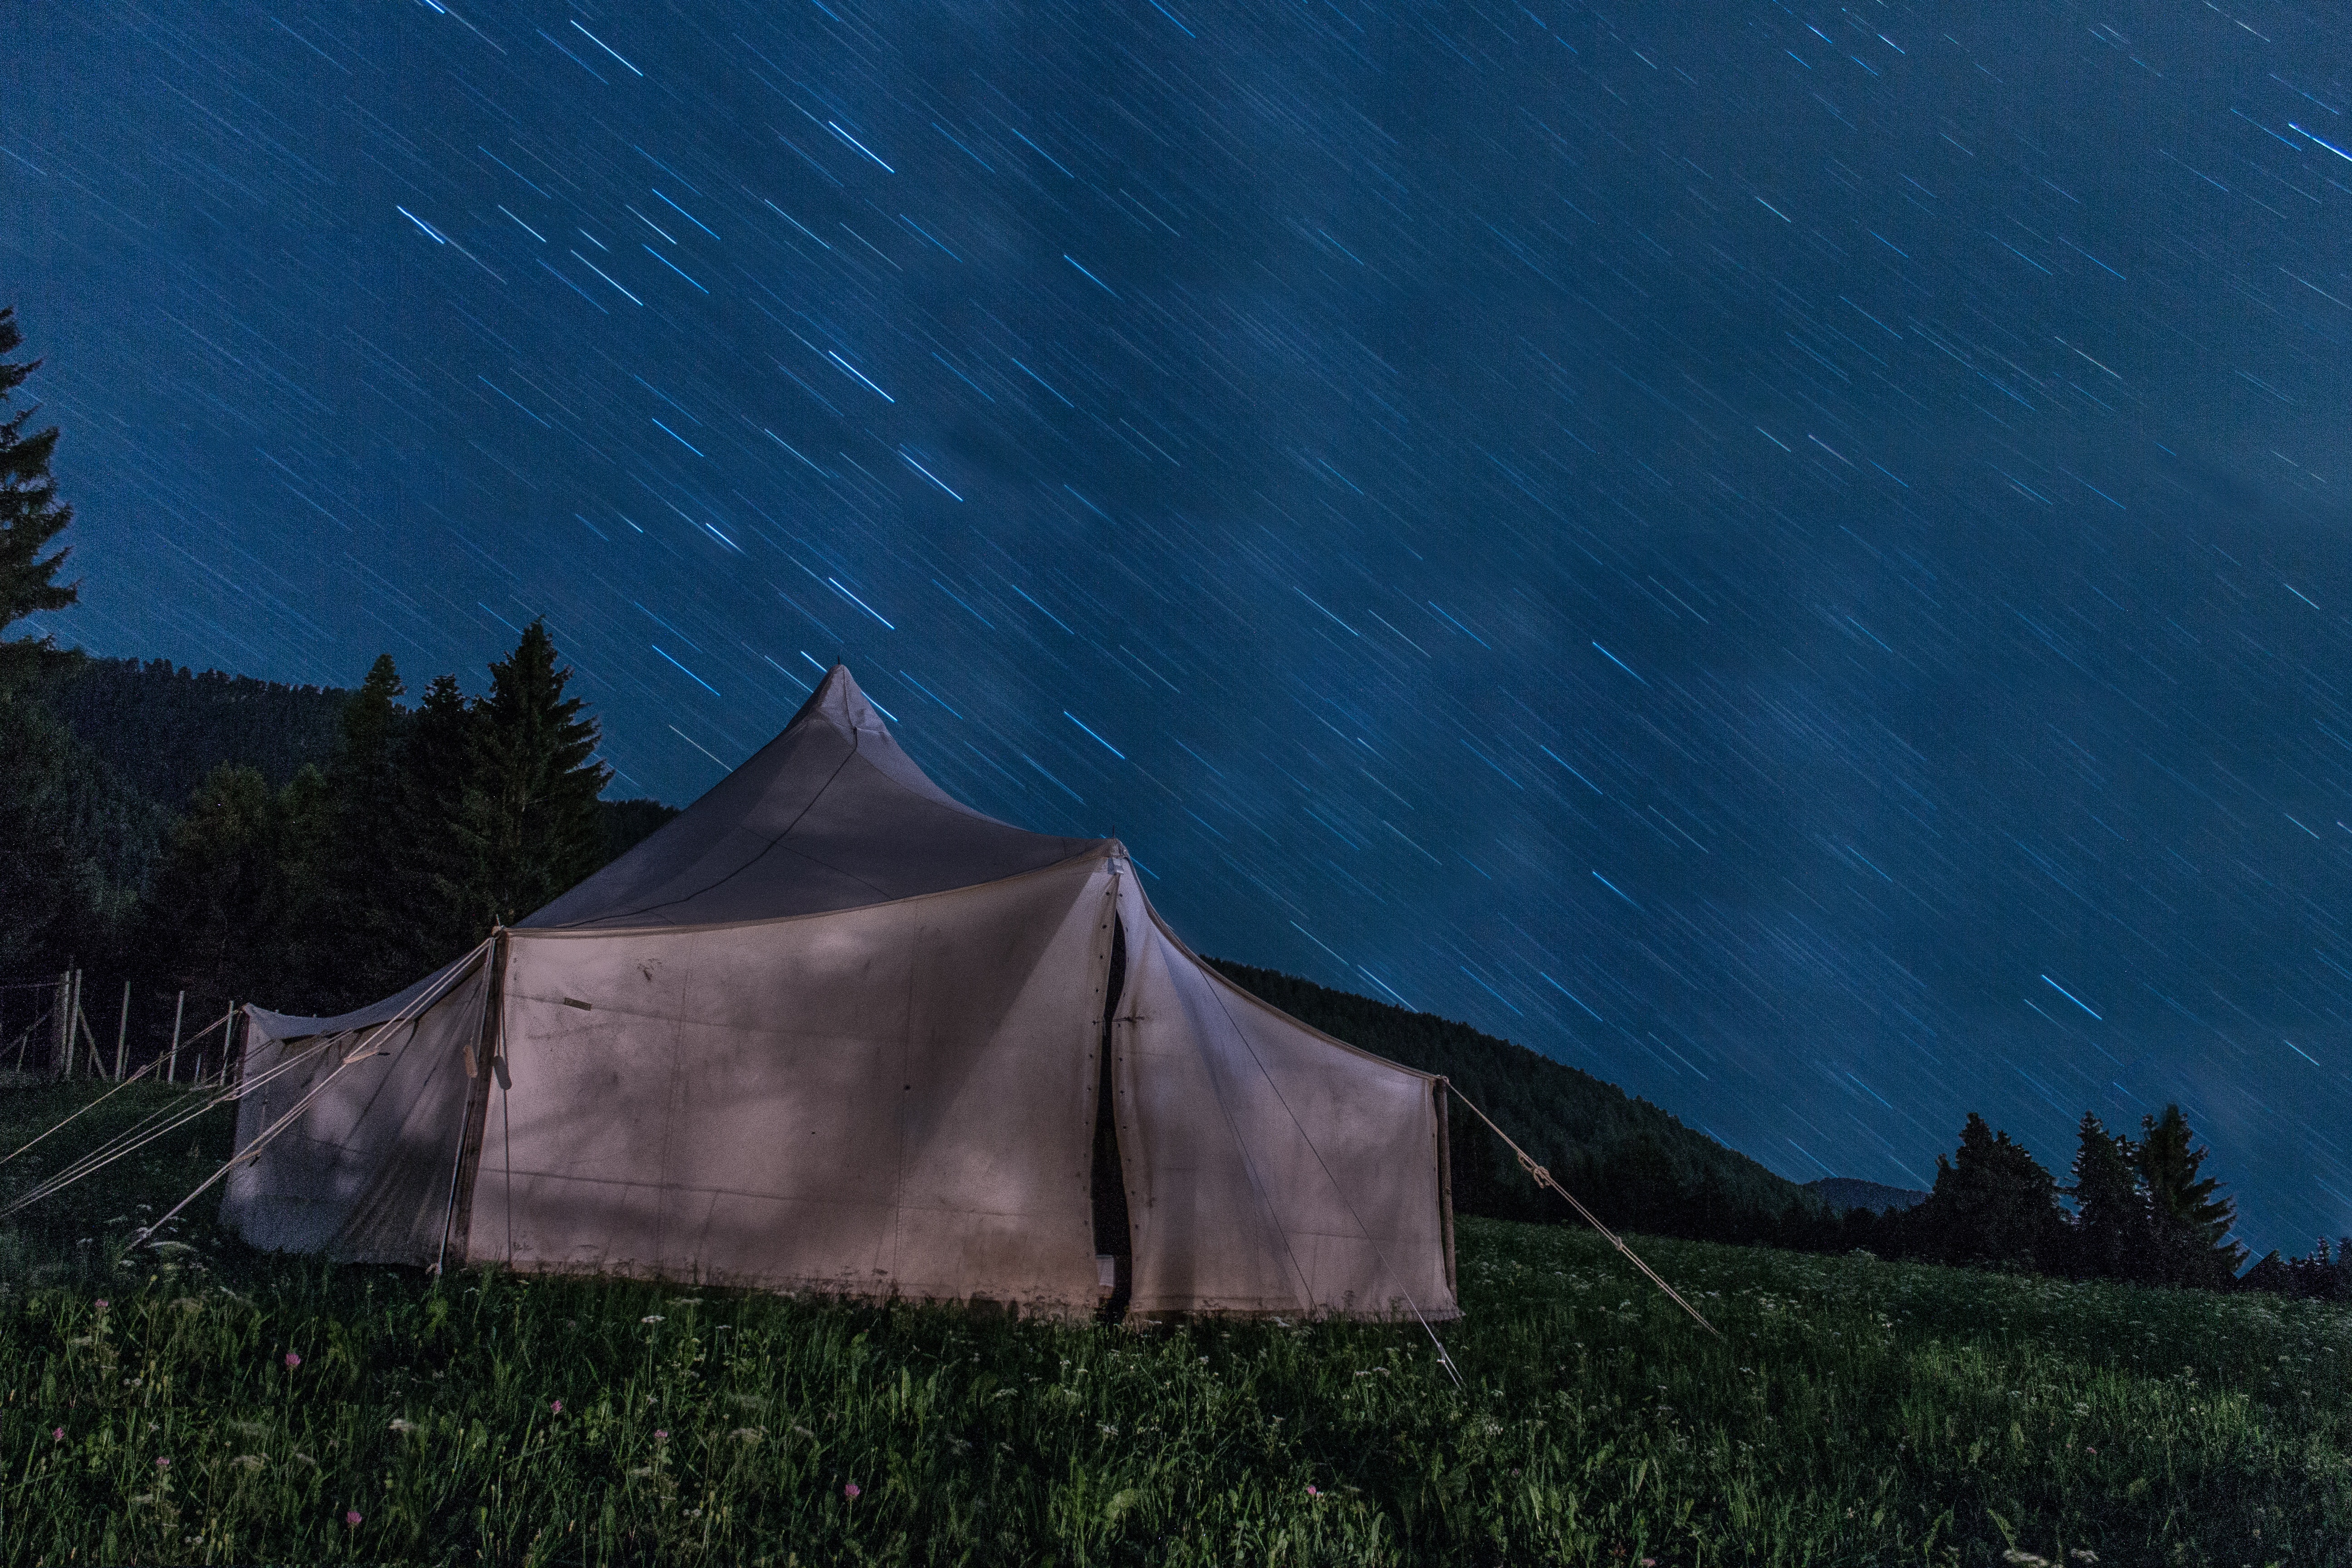 Brown Tent on Green Grass during Night Time, Camping, Grass, Landscape, Mountain, HQ Photo